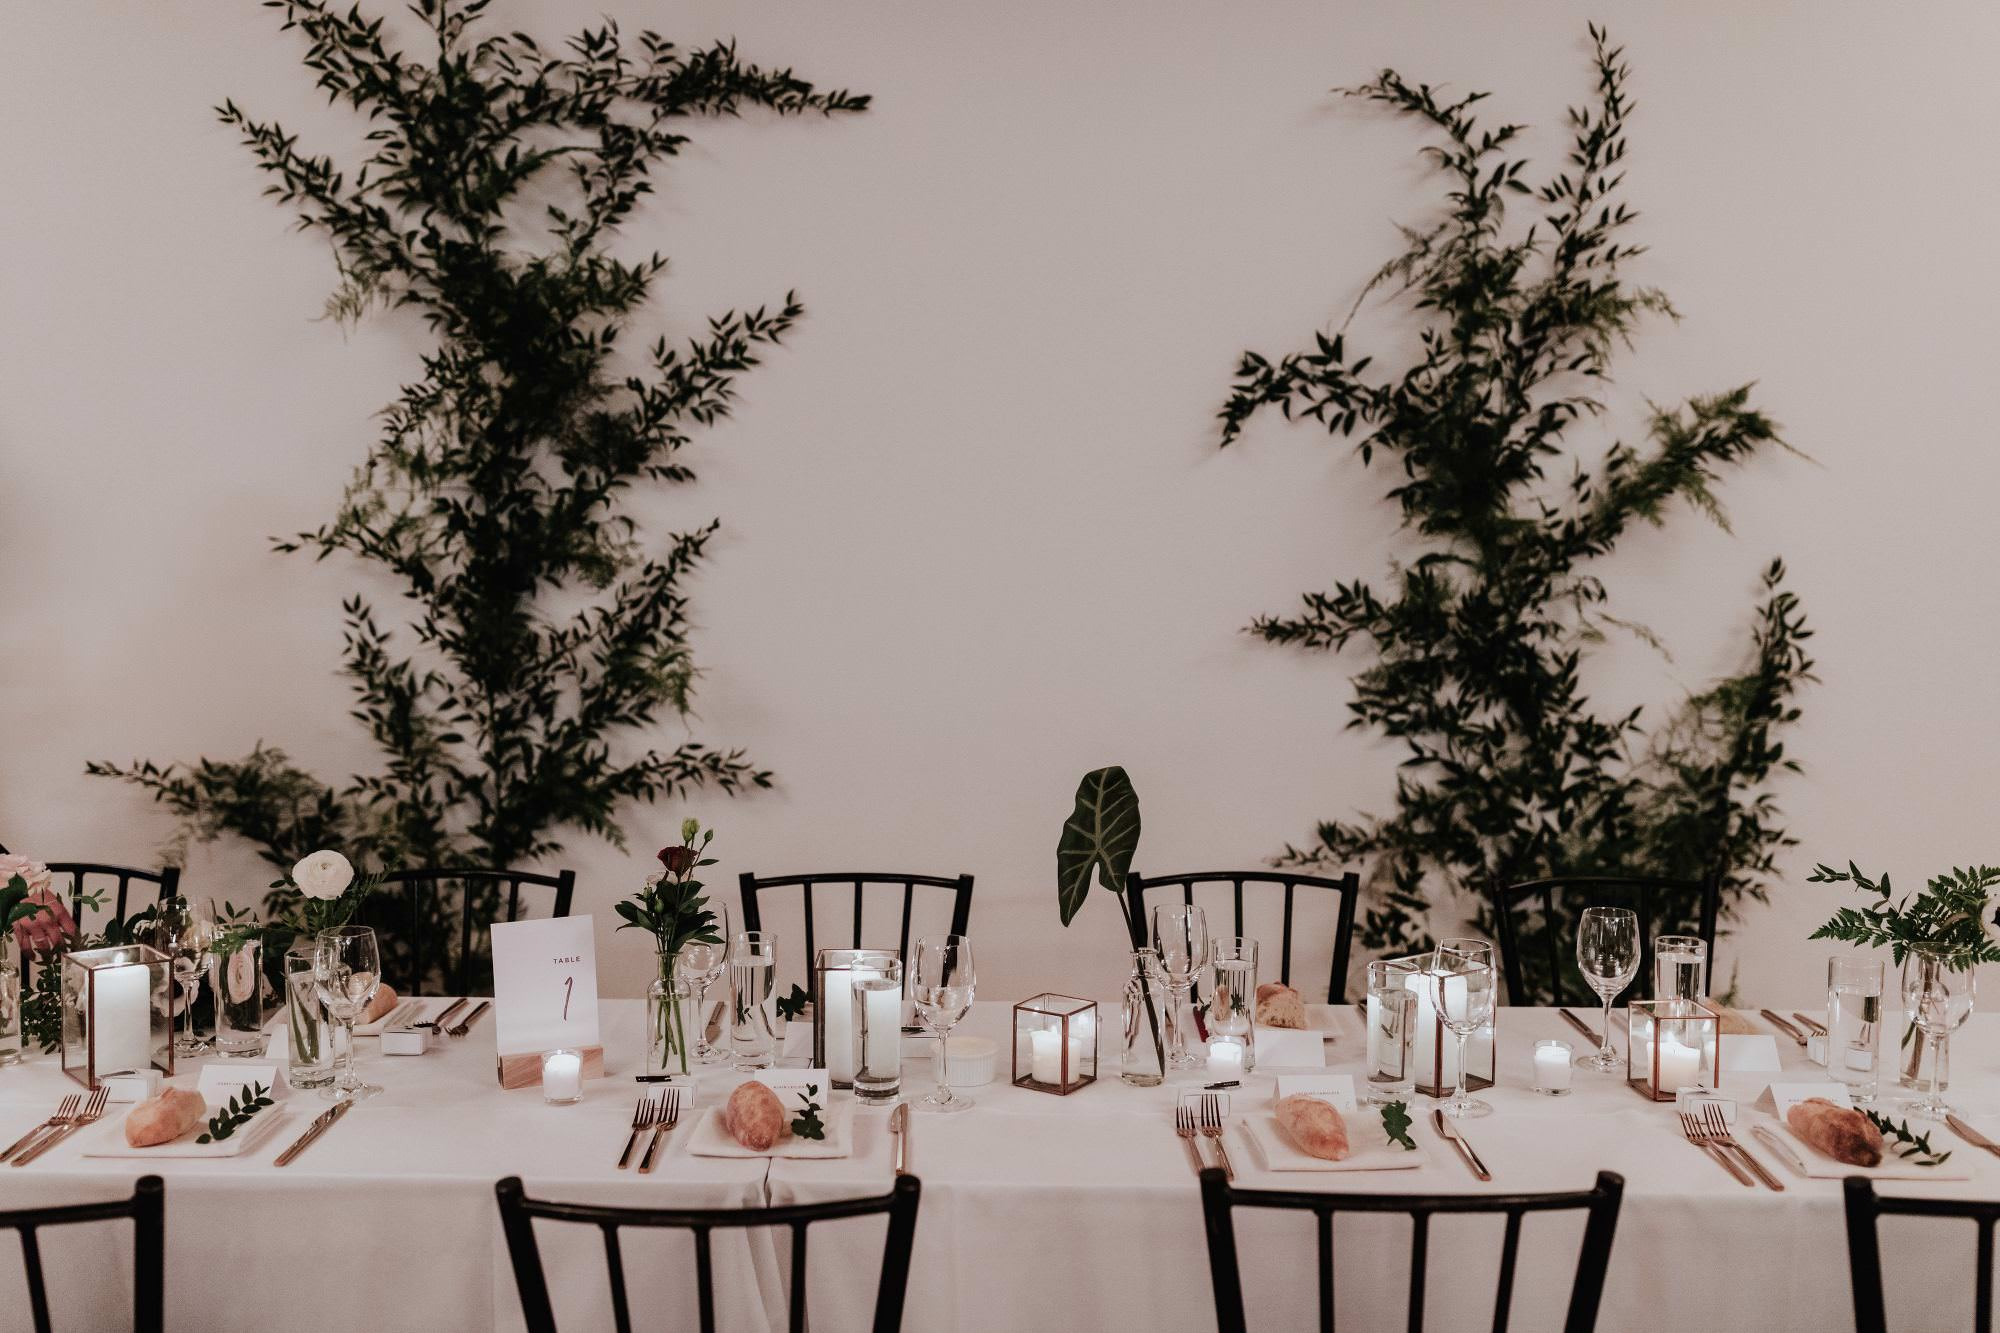 Wedding details and florals at the head table in Espace 3550 by Hera Mariages